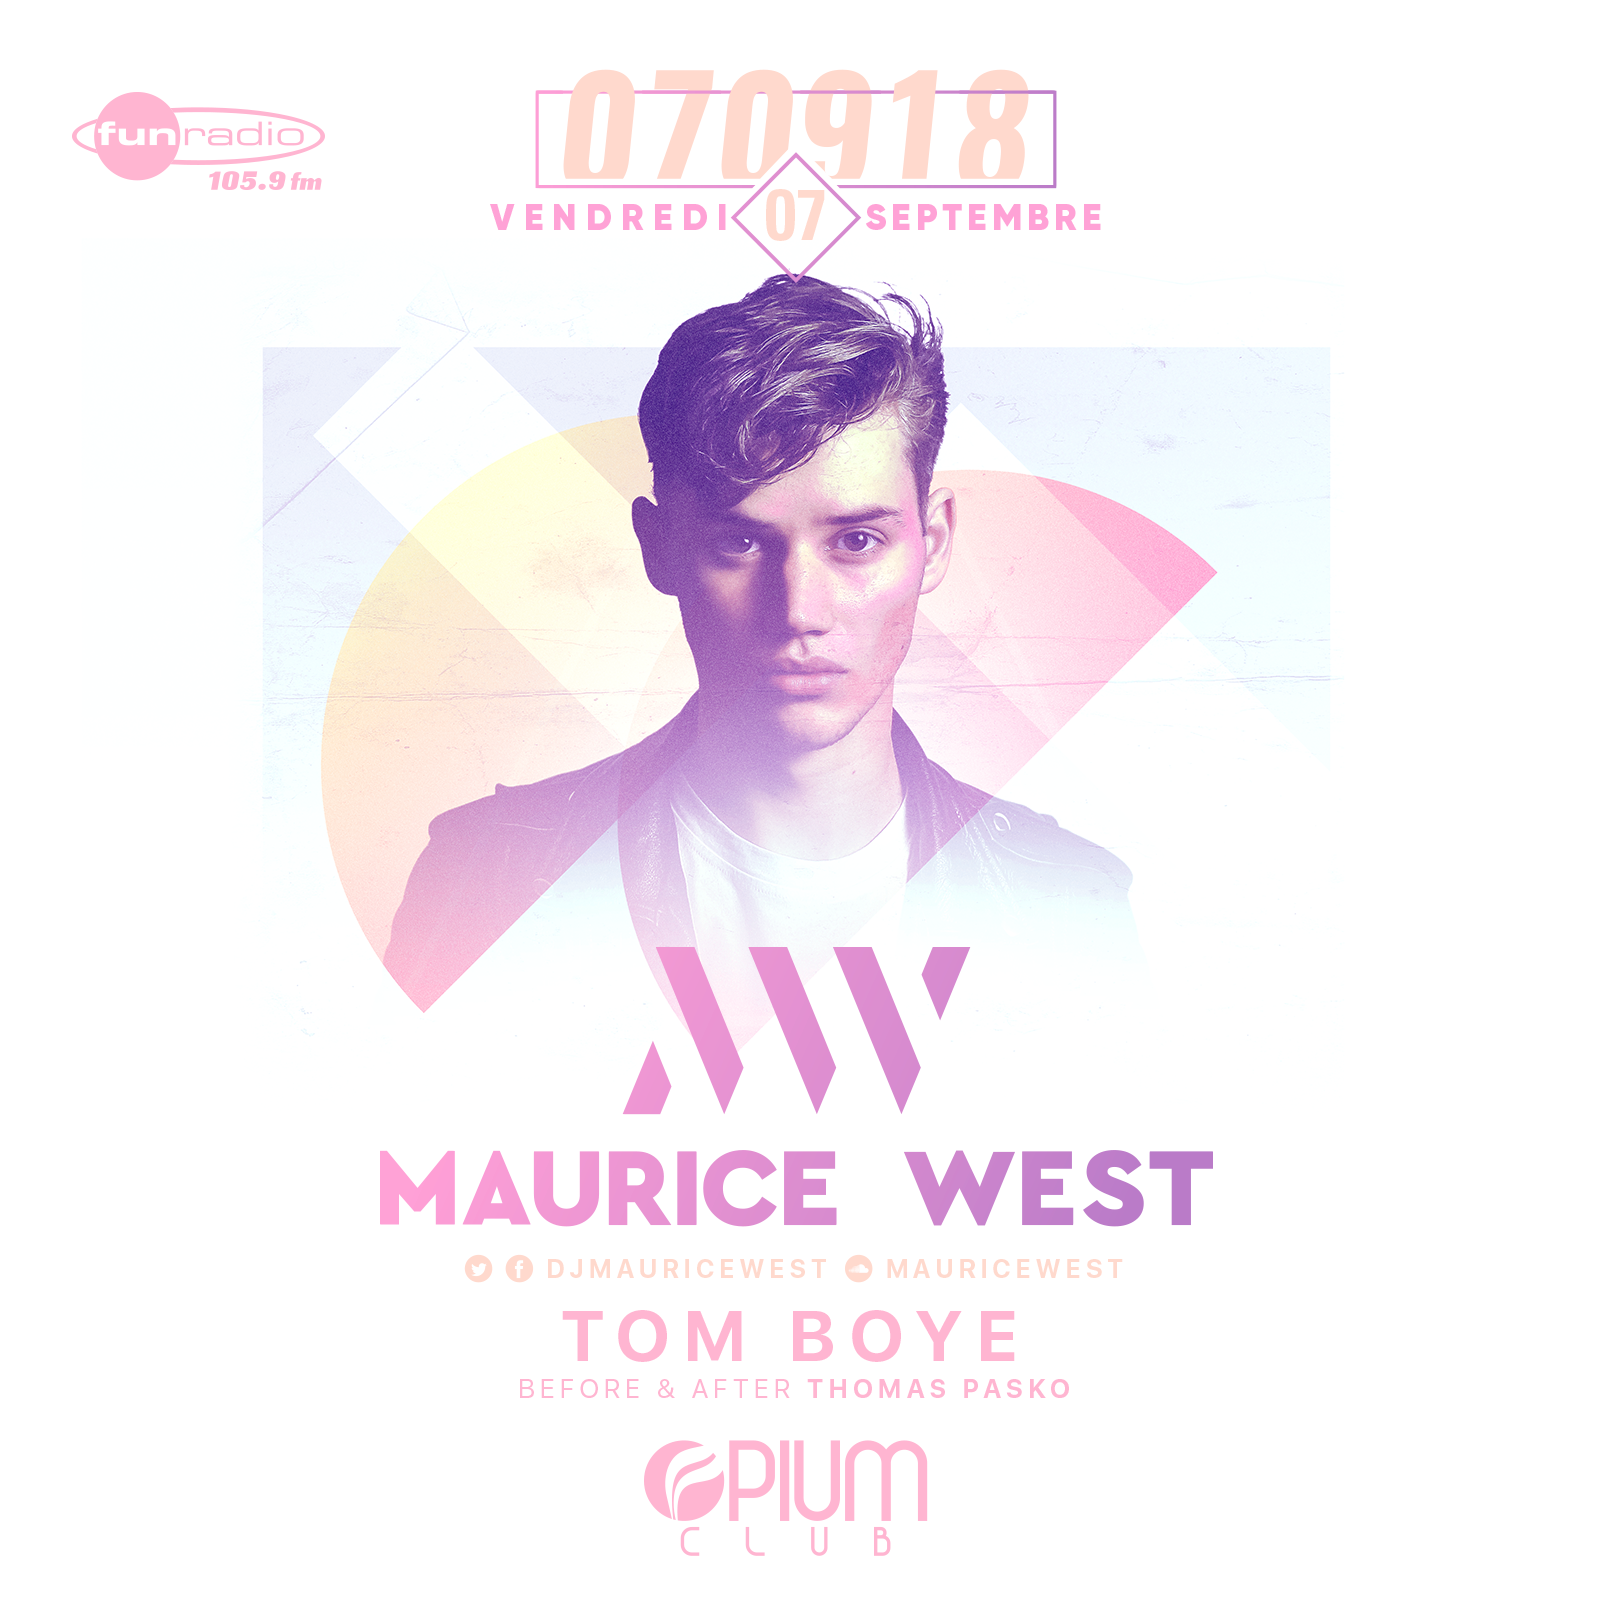 Maurice West, Tom Boye, Thomas Pasko Opium Club Toulouse